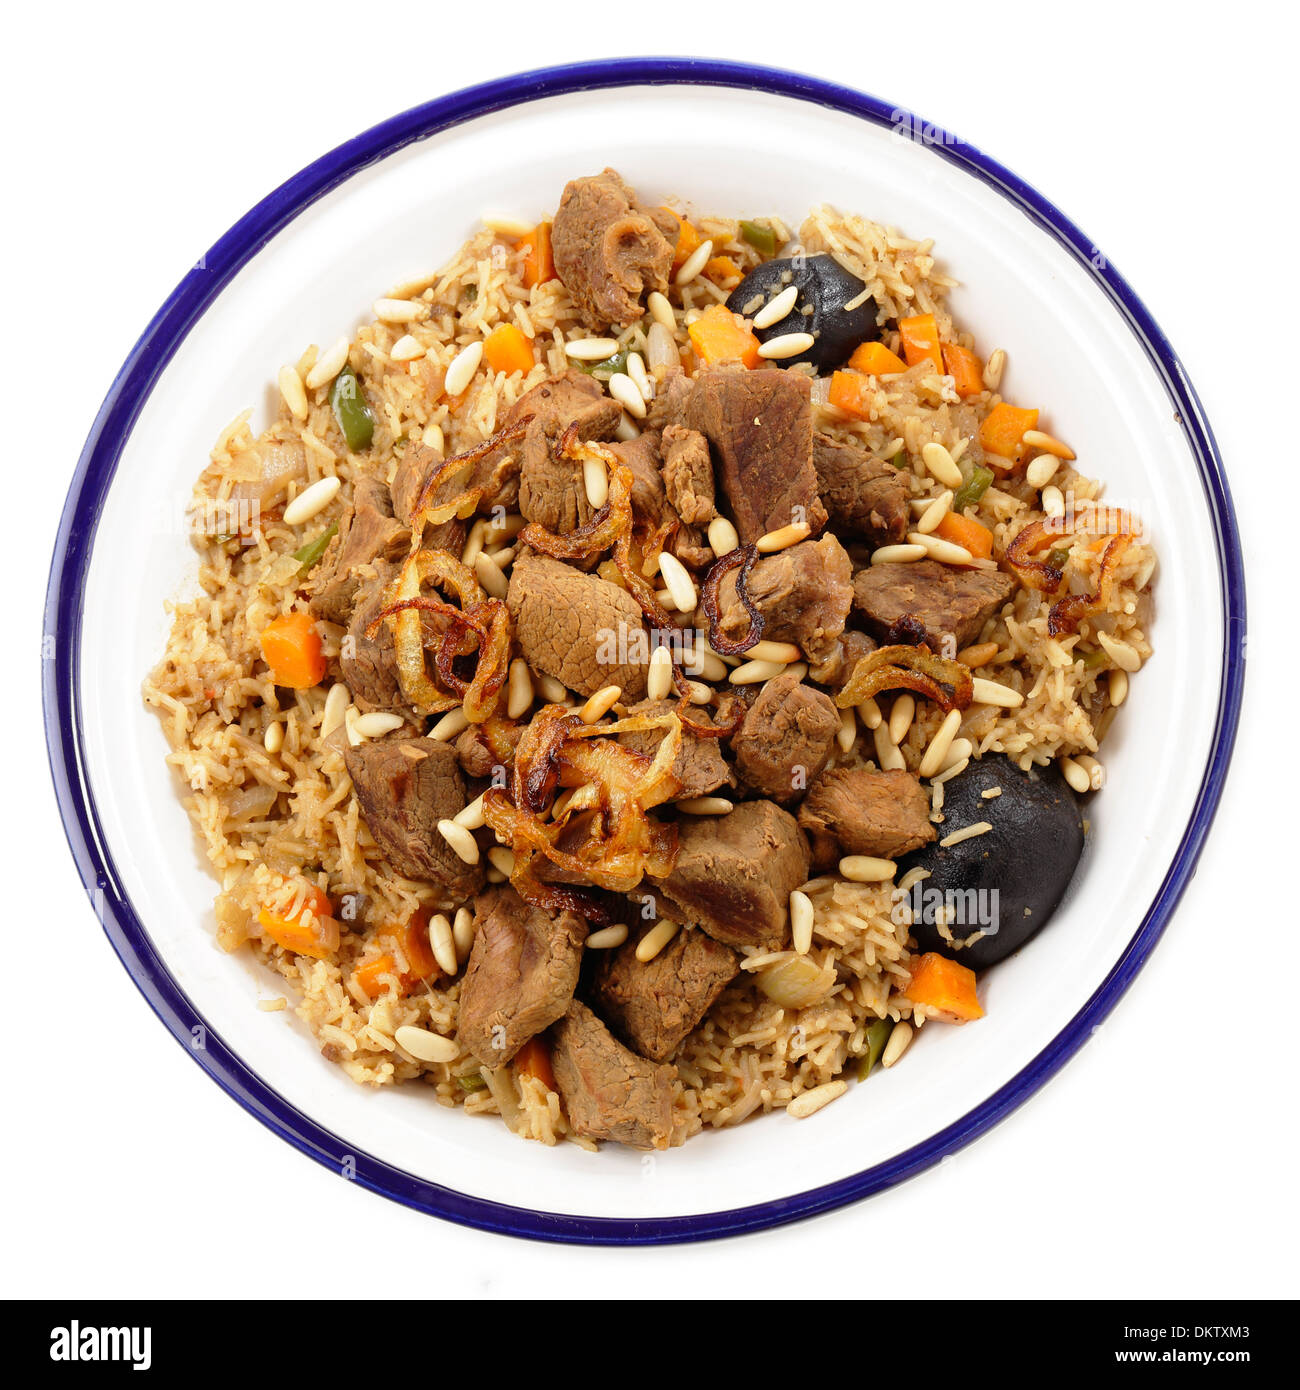 A tagine bowl of Saudi Arabian-style kabsa shot from above, A tomato salsa would be served with this. - Stock Image